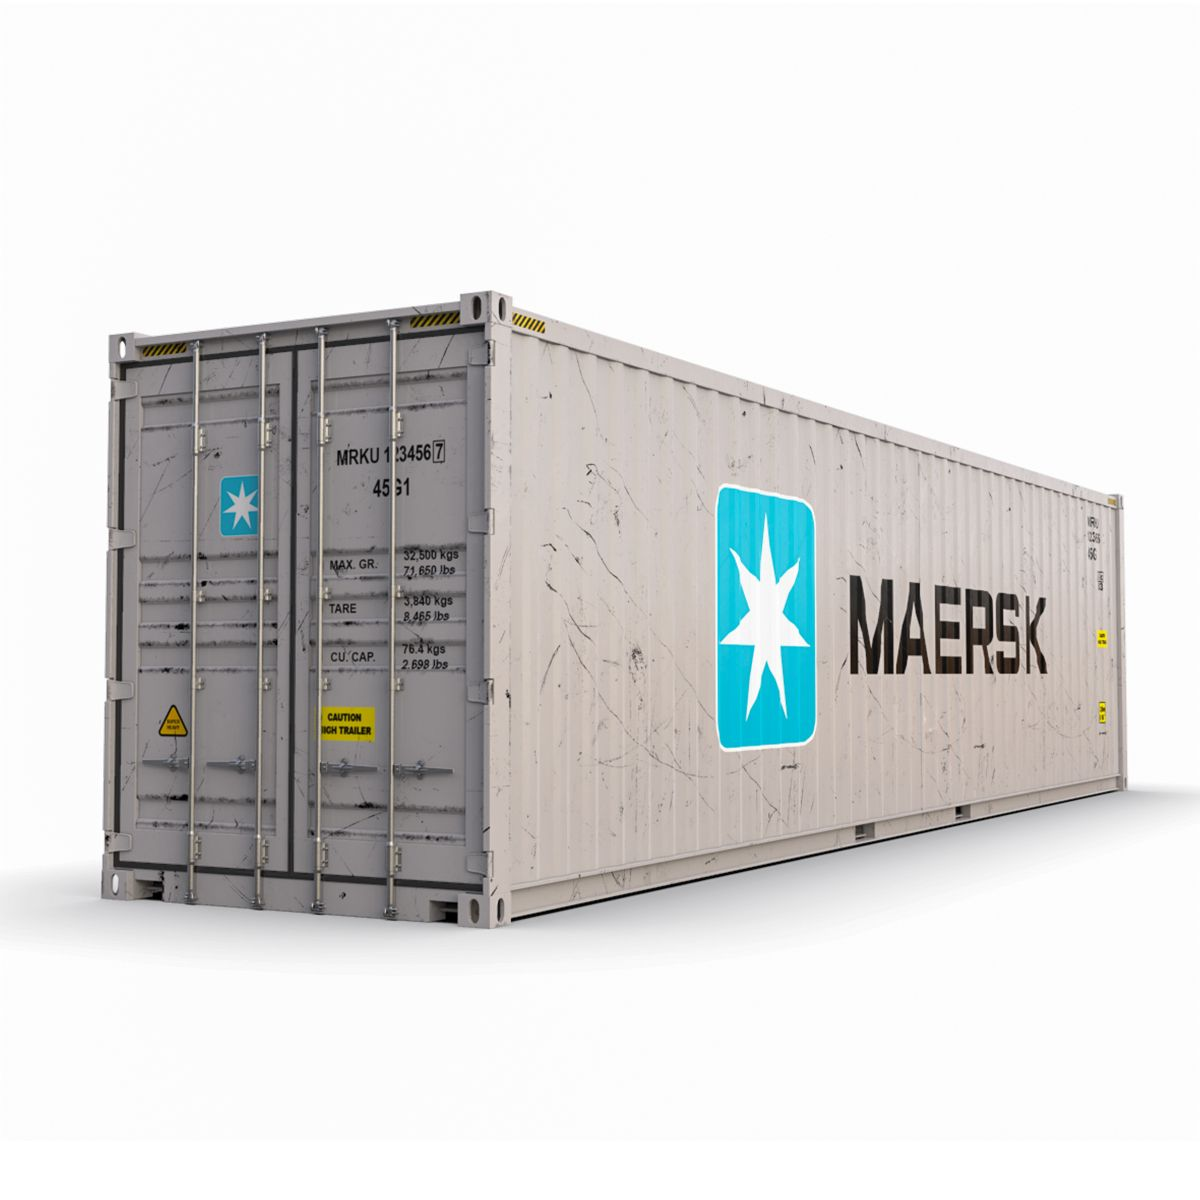 40 Feet High Cube Maersk Shipping Container 3d Model Flatpyramid Shipping Container Cargo Container Container